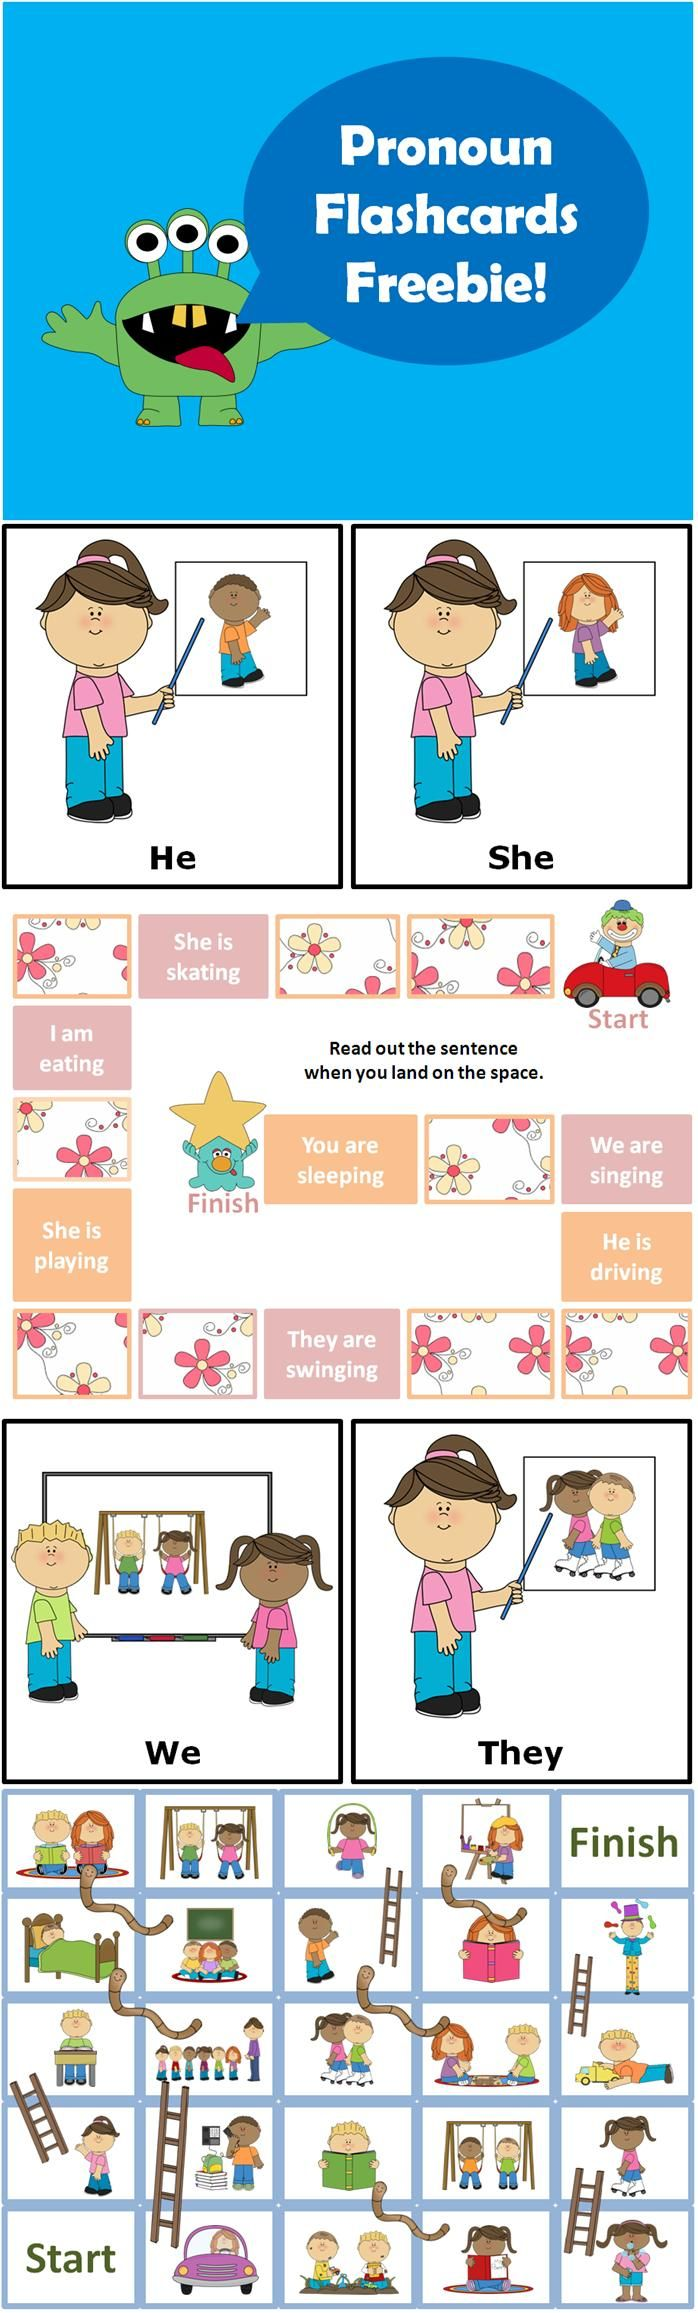 *FREE* Subject Pronouns Flashcards + Board Games  This freebie contains 8 Subject Pronoun Flashcards (I, You, He, She, We, They, It) + 2 board games!  http://www.teacherspayteachers.com/Product/Subject-Pronouns-Flashcards-Board-Games-ESL-Roller-Freebie-780986